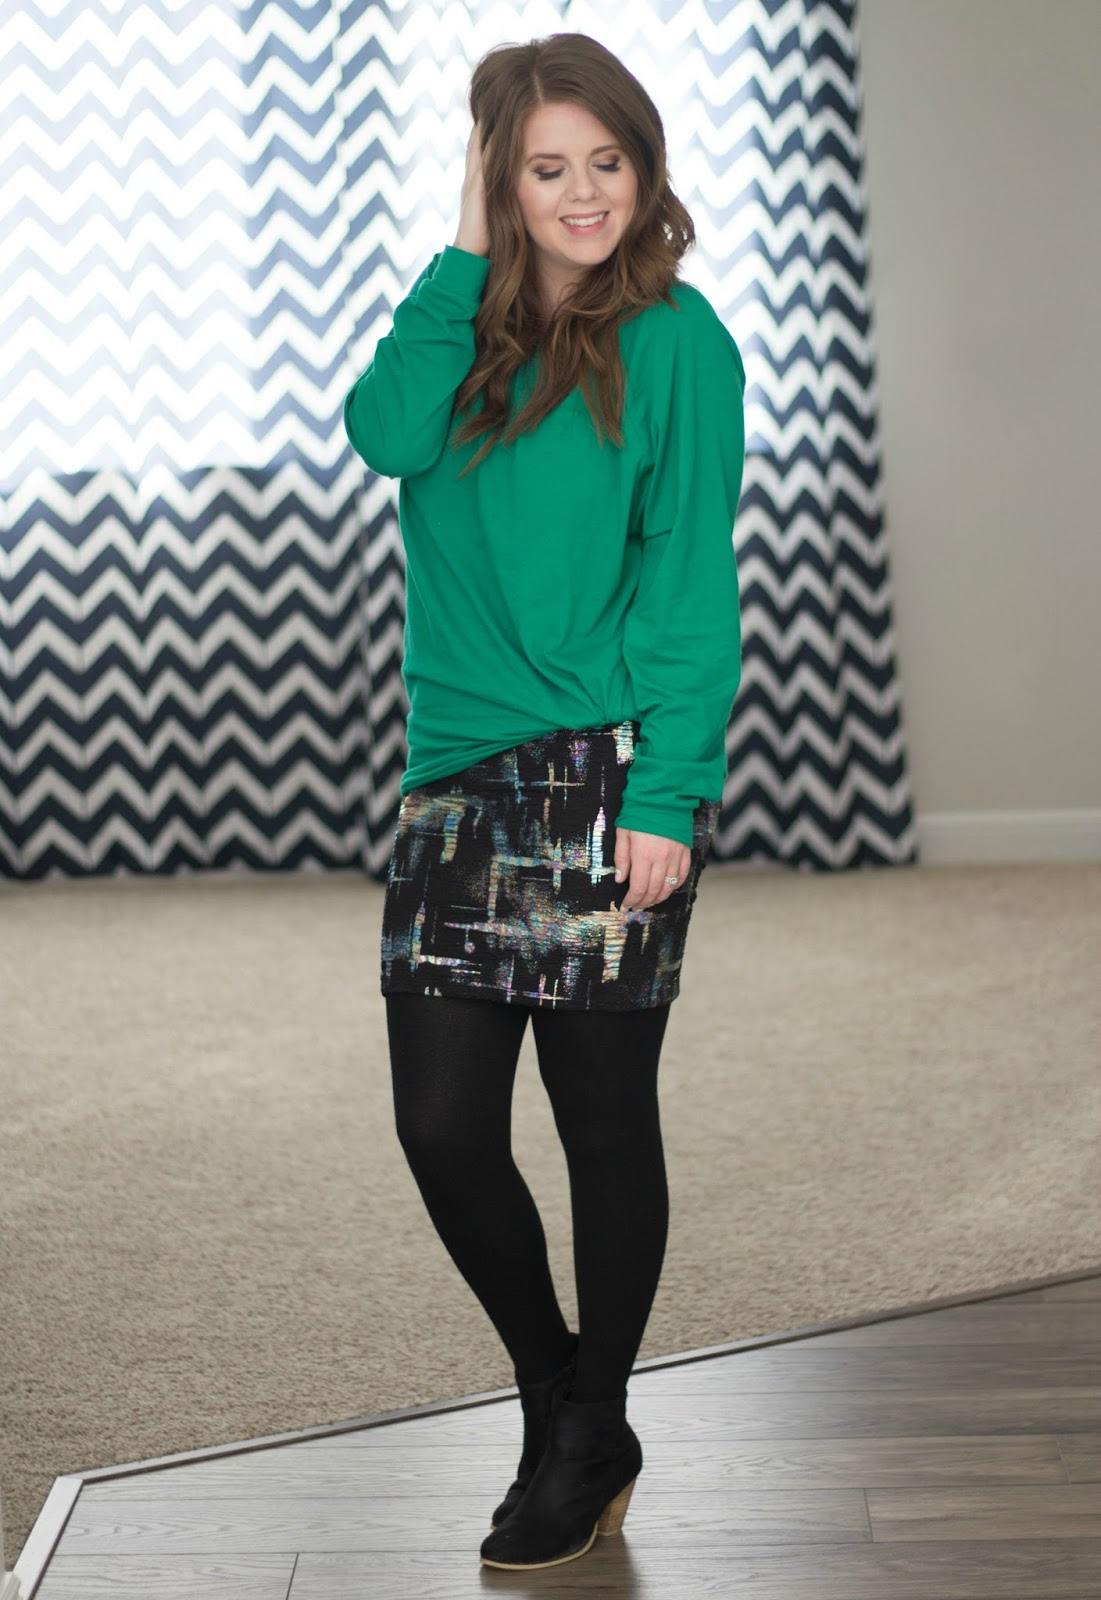 Lularoe Cassie skirt with Mint Julep Green Dolman Top